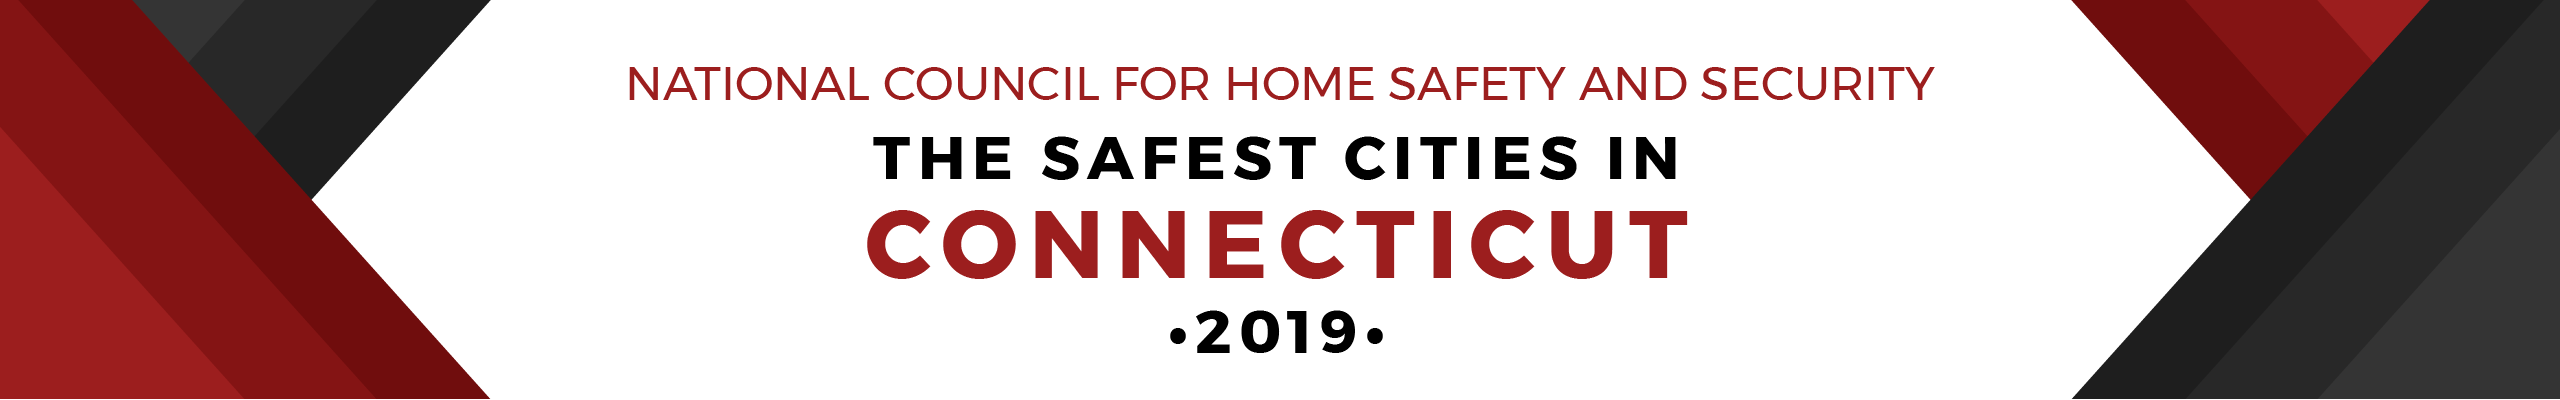 Safest Cities Connecticut - header